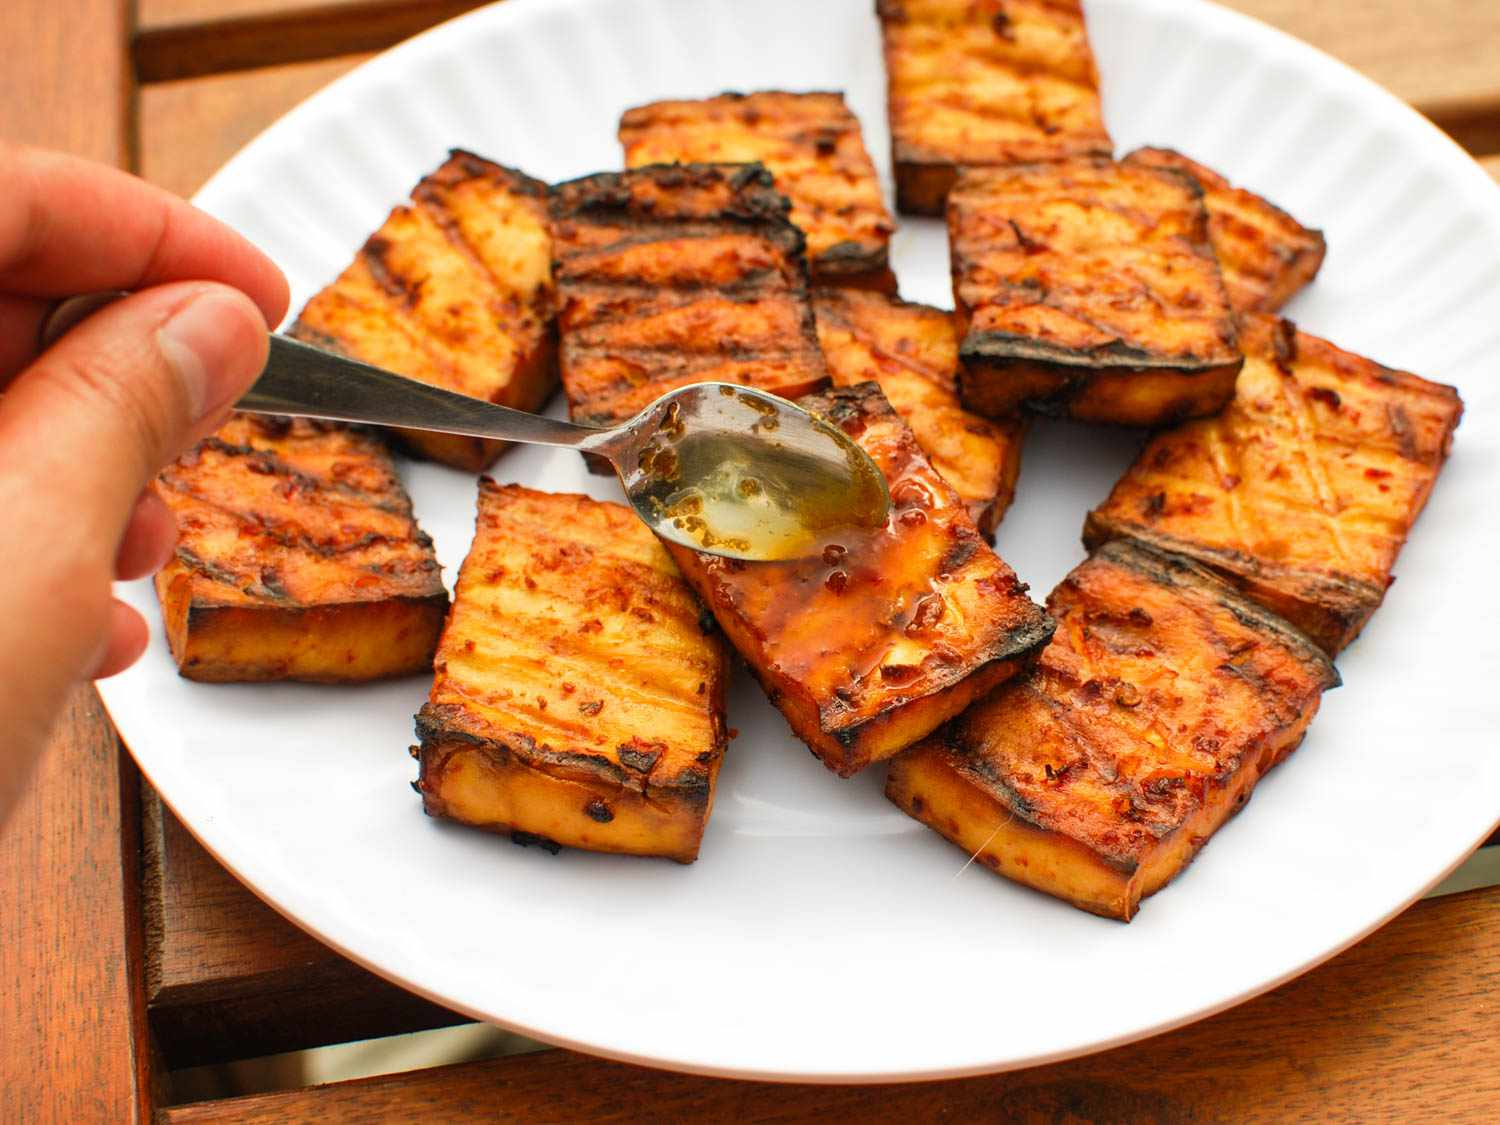 06182015-grilled-tofu-chipotle-miso-sauce-shaozhizhong-14.jpg